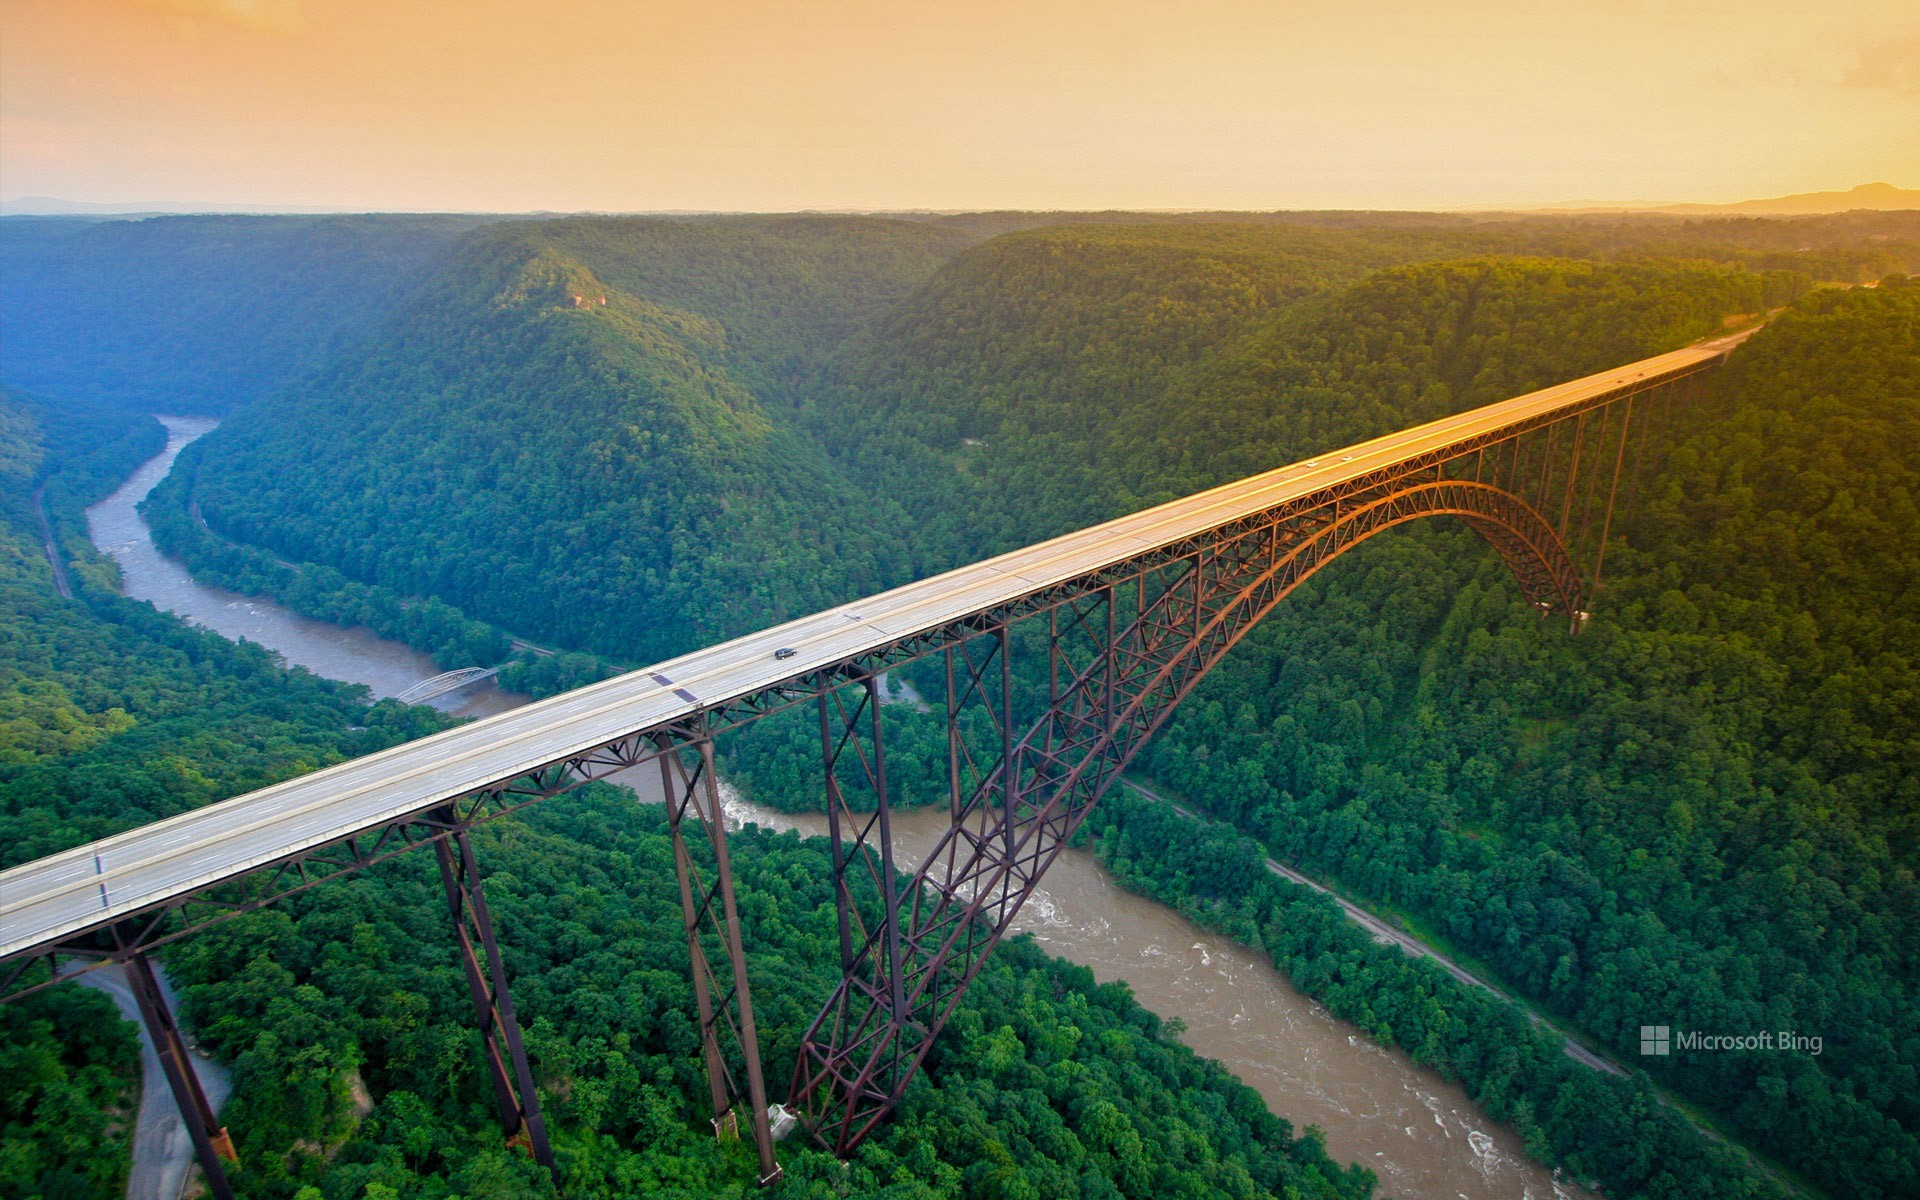 New River Gorge Bridge, New River Gorge National Park and Preserve, West Virginia, USA